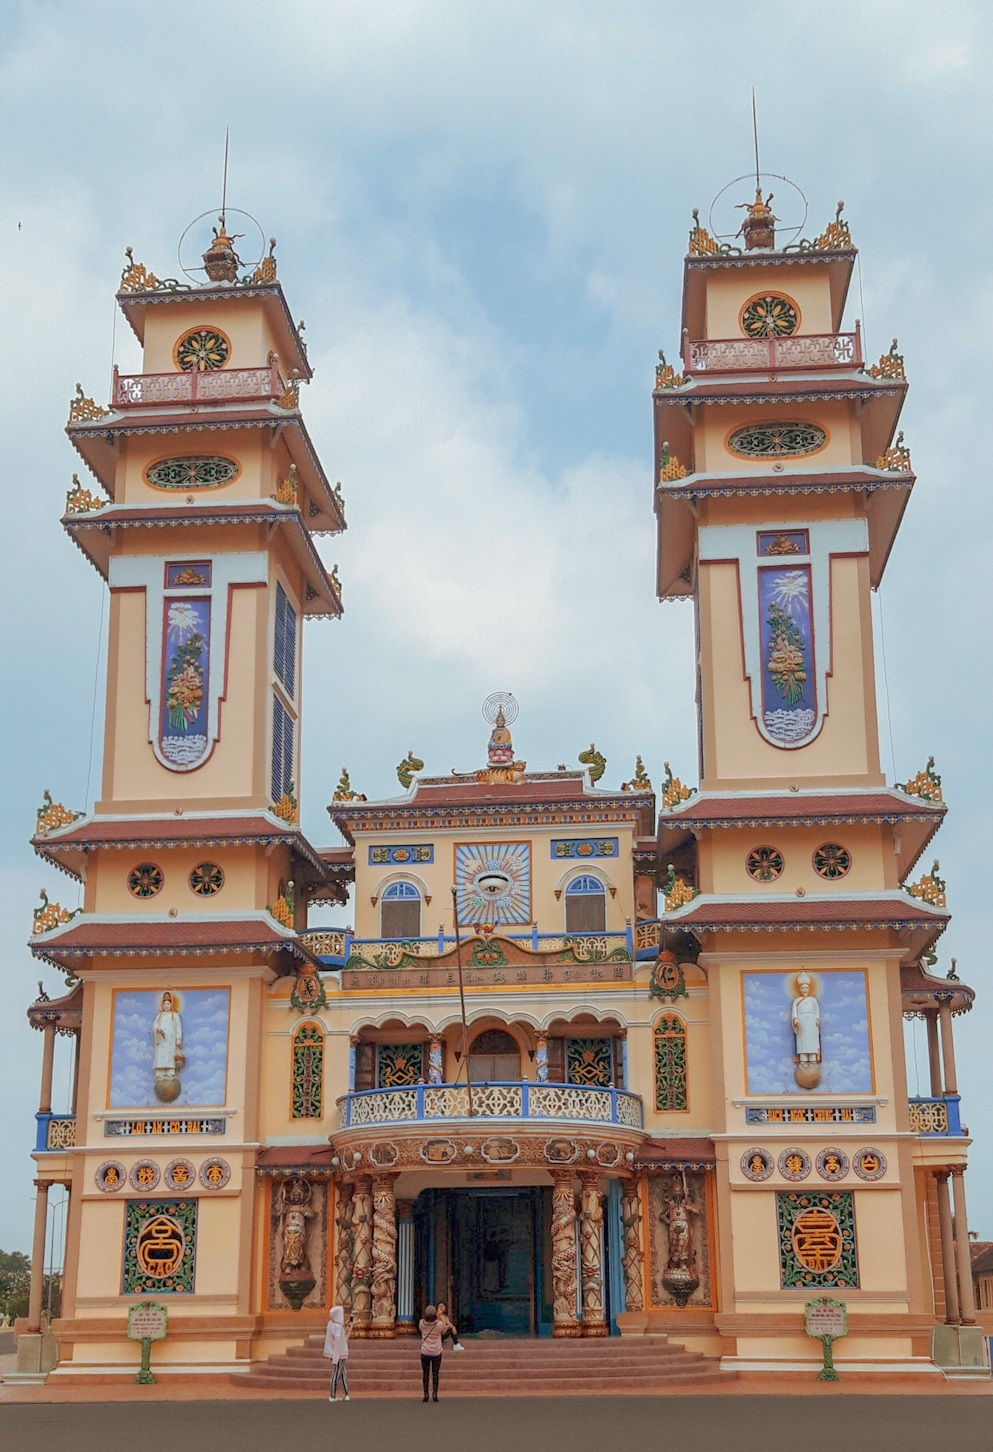 As I am staying in Ho Chi Minh for a while, I decided to explore the surroundings of the city. I visited the Cao Dai temple Ho Chi Minh, about 100 km away.